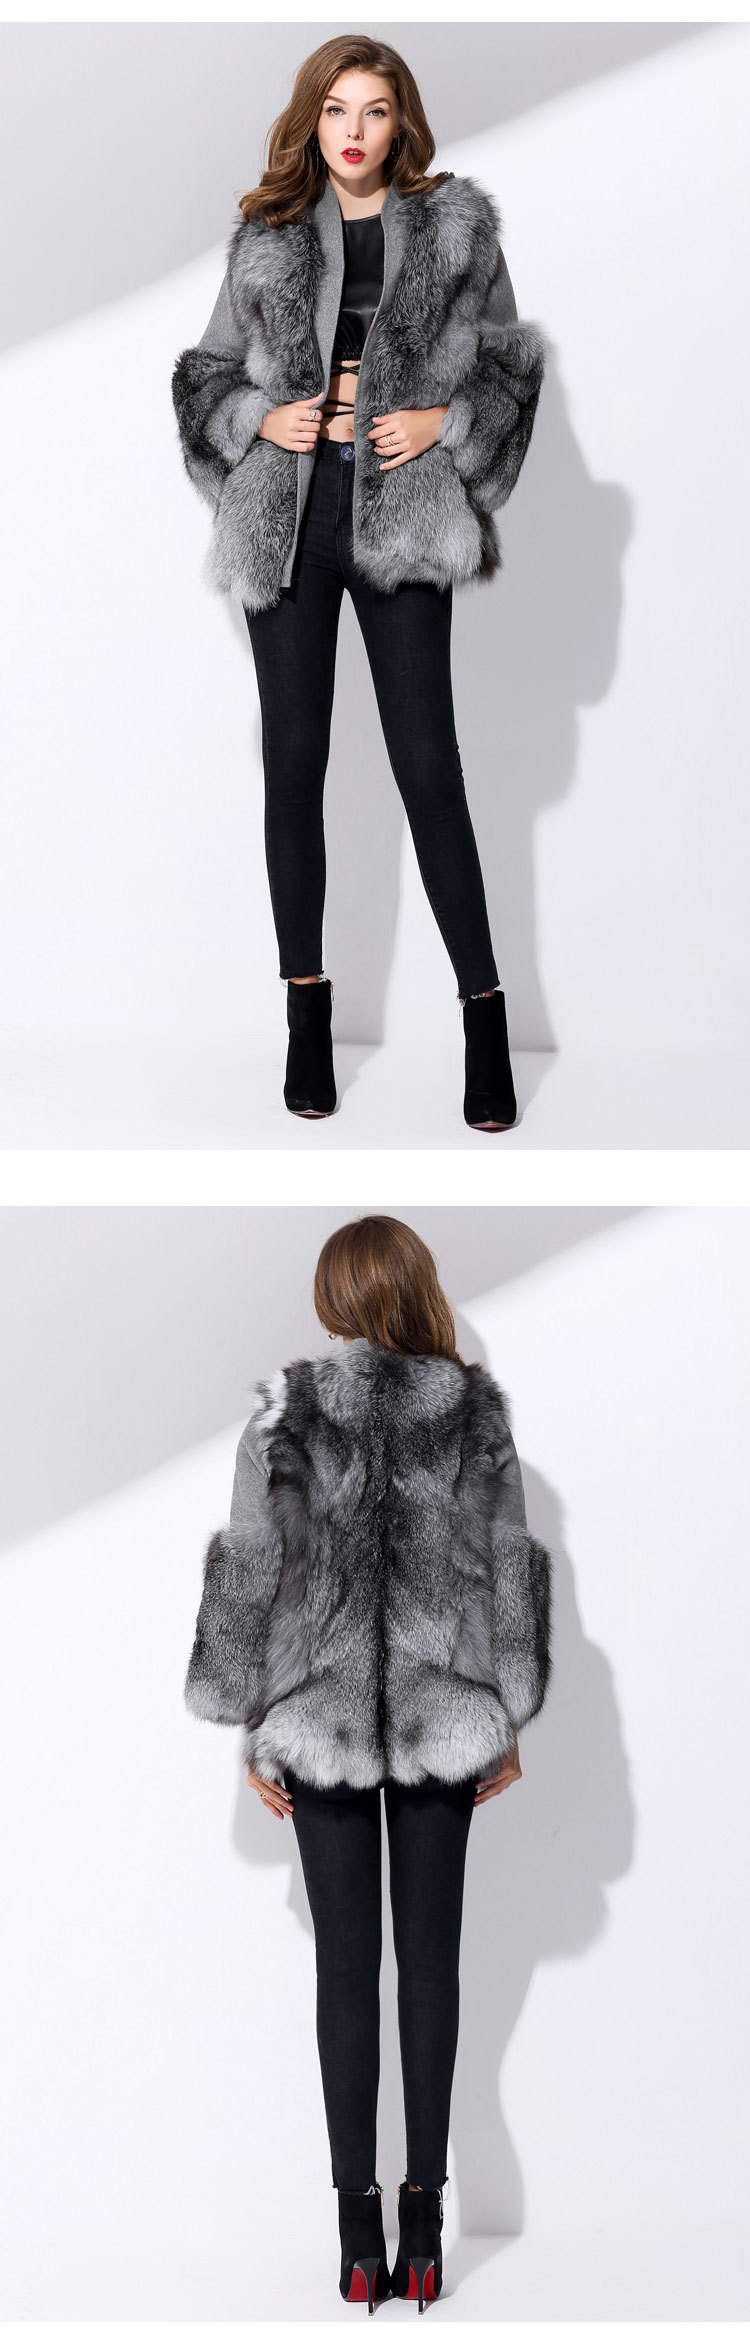 28619bbc951c Fox Fur Coat with Double-Sided Wool Trim 991c Details 1